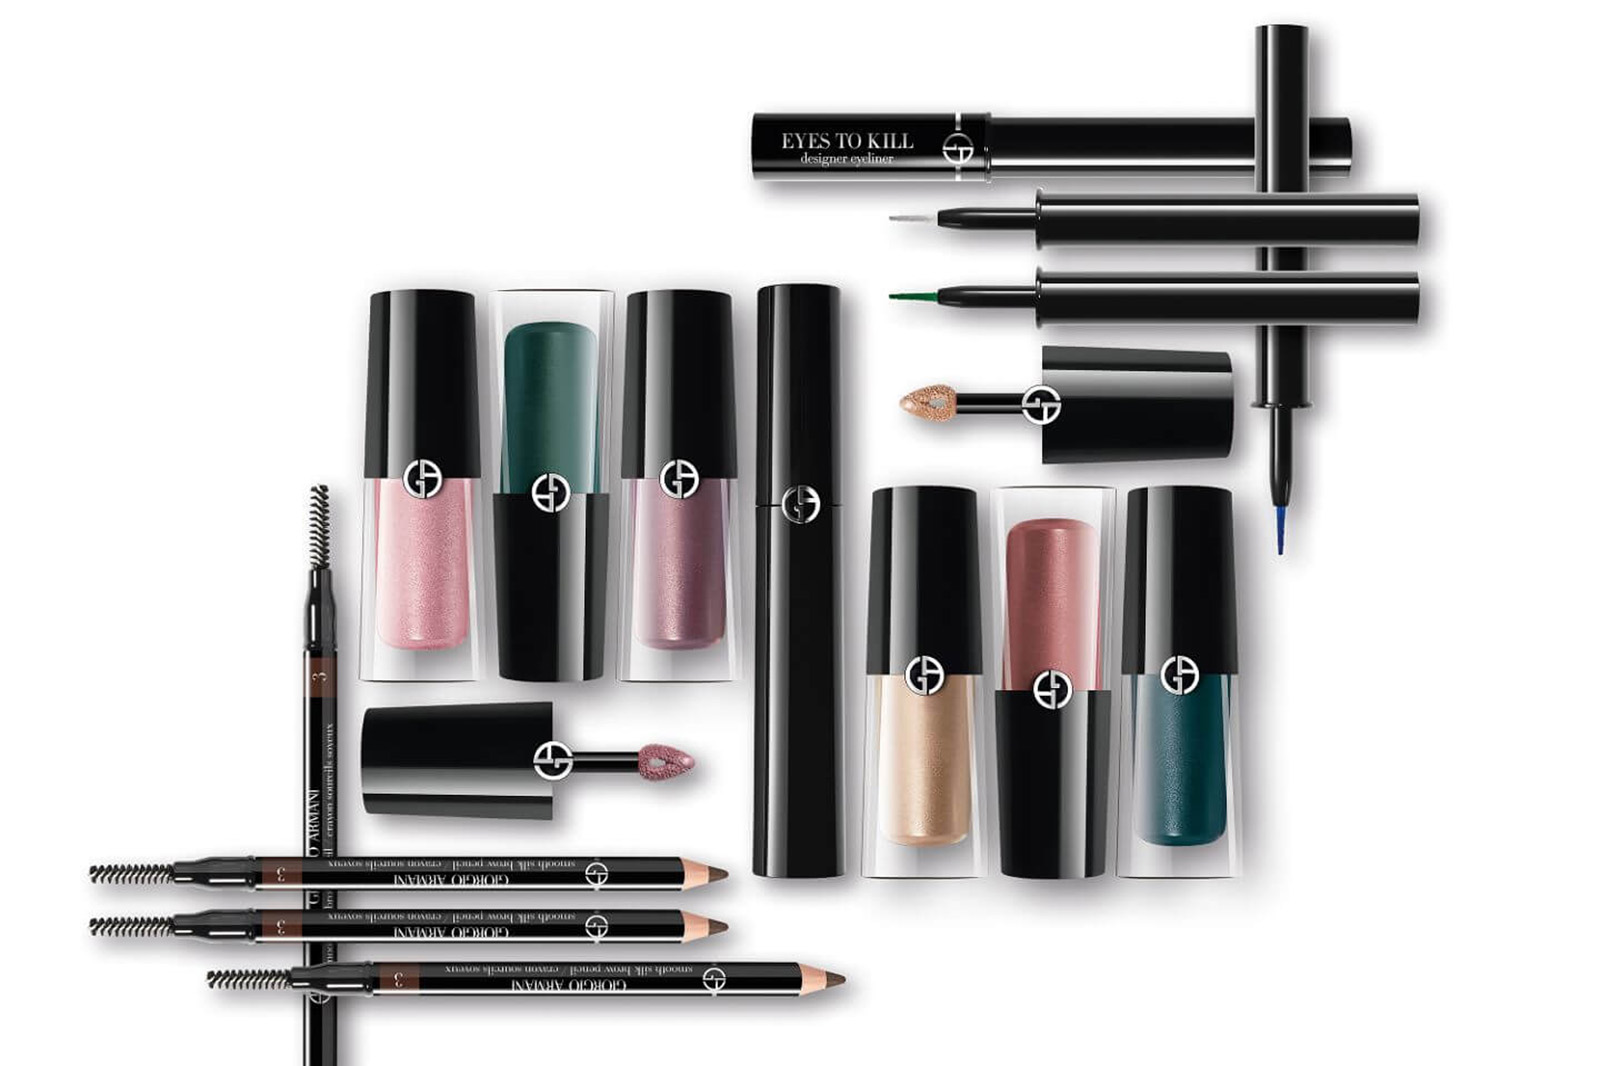 armani beauty eye tint collection rpitnemps 2019